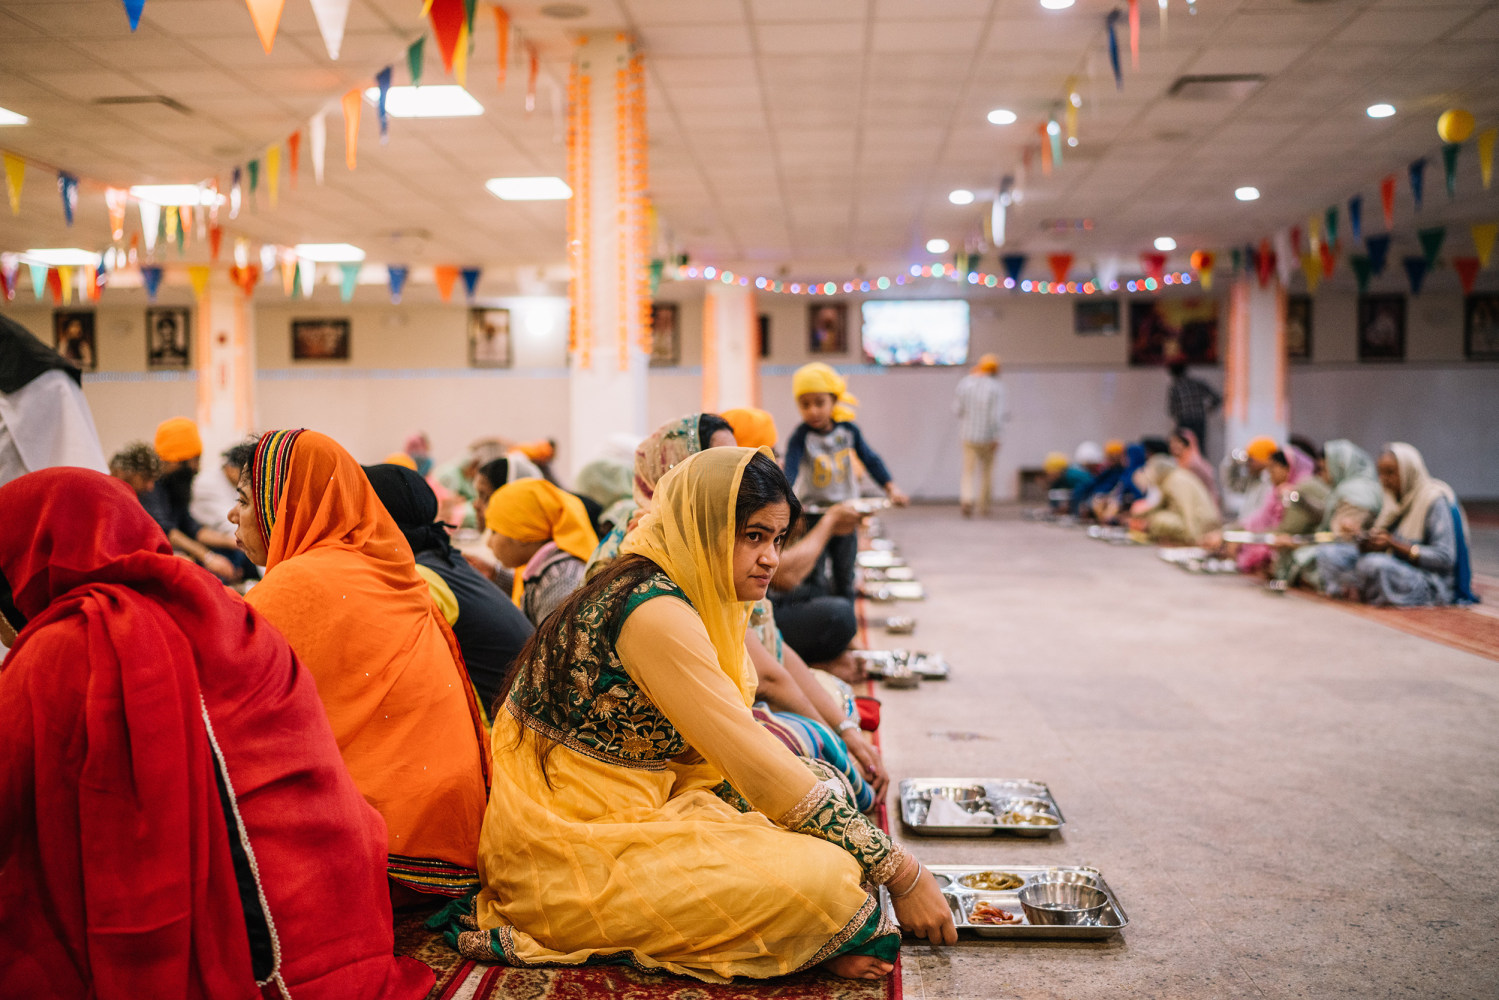 Preparation of Langar and Dietary Restrictions | FoodinSikhism